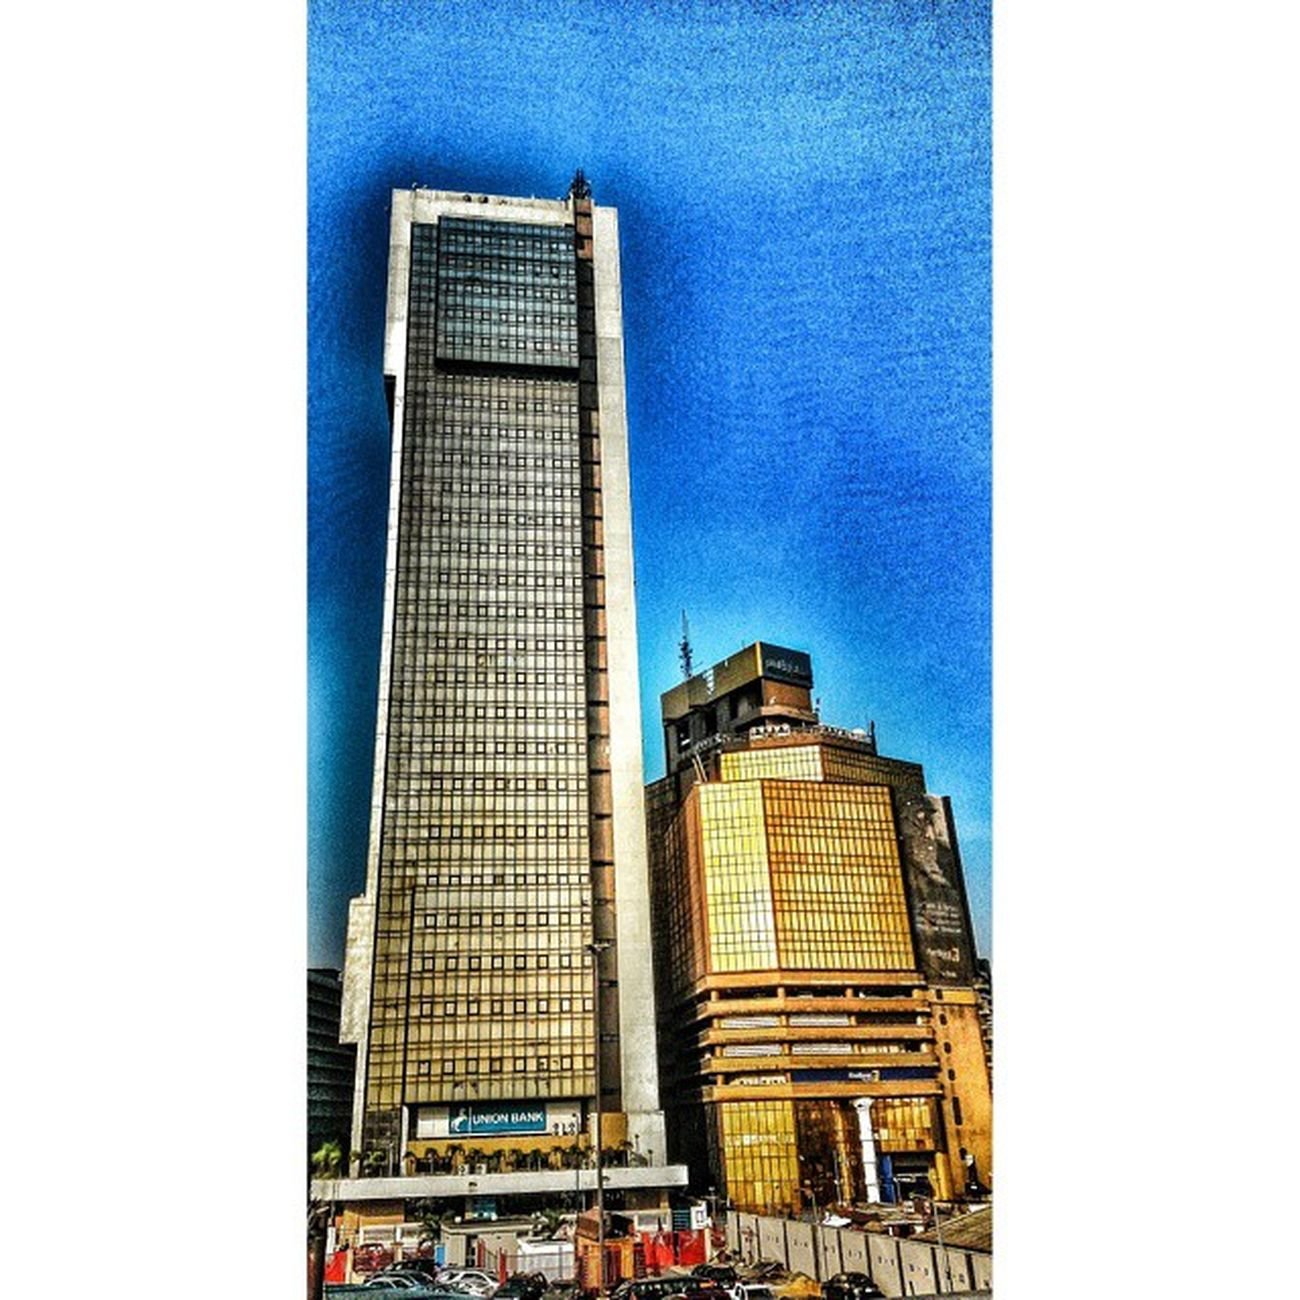 @firstbanknigeria and @unionbankng part of the oldest set of banks in Nigeria and both very reliable. Picture was shot with my Samsung Galaxy S4Mini. Very fast lens, captured from a bus on motion. Banks BankSeries PhonePhotography HDR Structures SamsungMobile SamsungS4Mini SamsungGalaxy PhoneEdited PhoneCamera LagosIsland Marina LifeOfaCameraGuy LifeOfaLereBoy iamEdAce